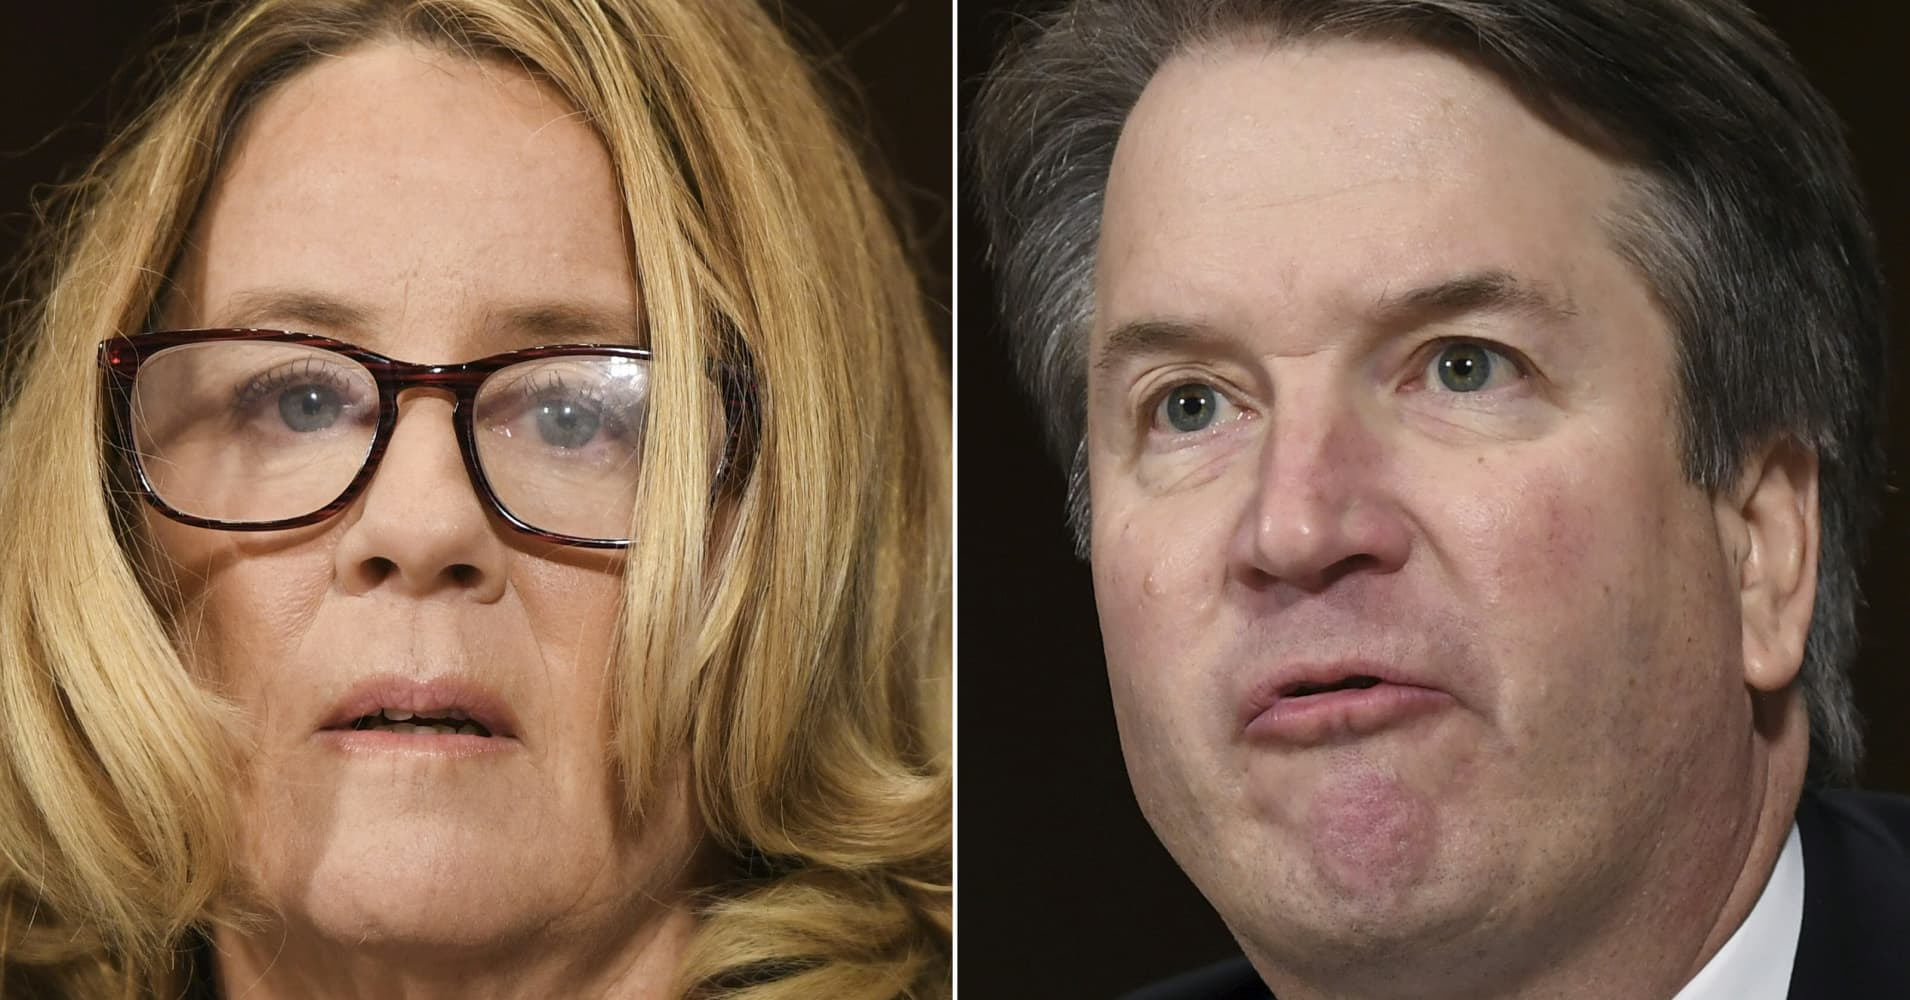 Watch The Key Moments From Kavanaughs And Christine Blasey Fords